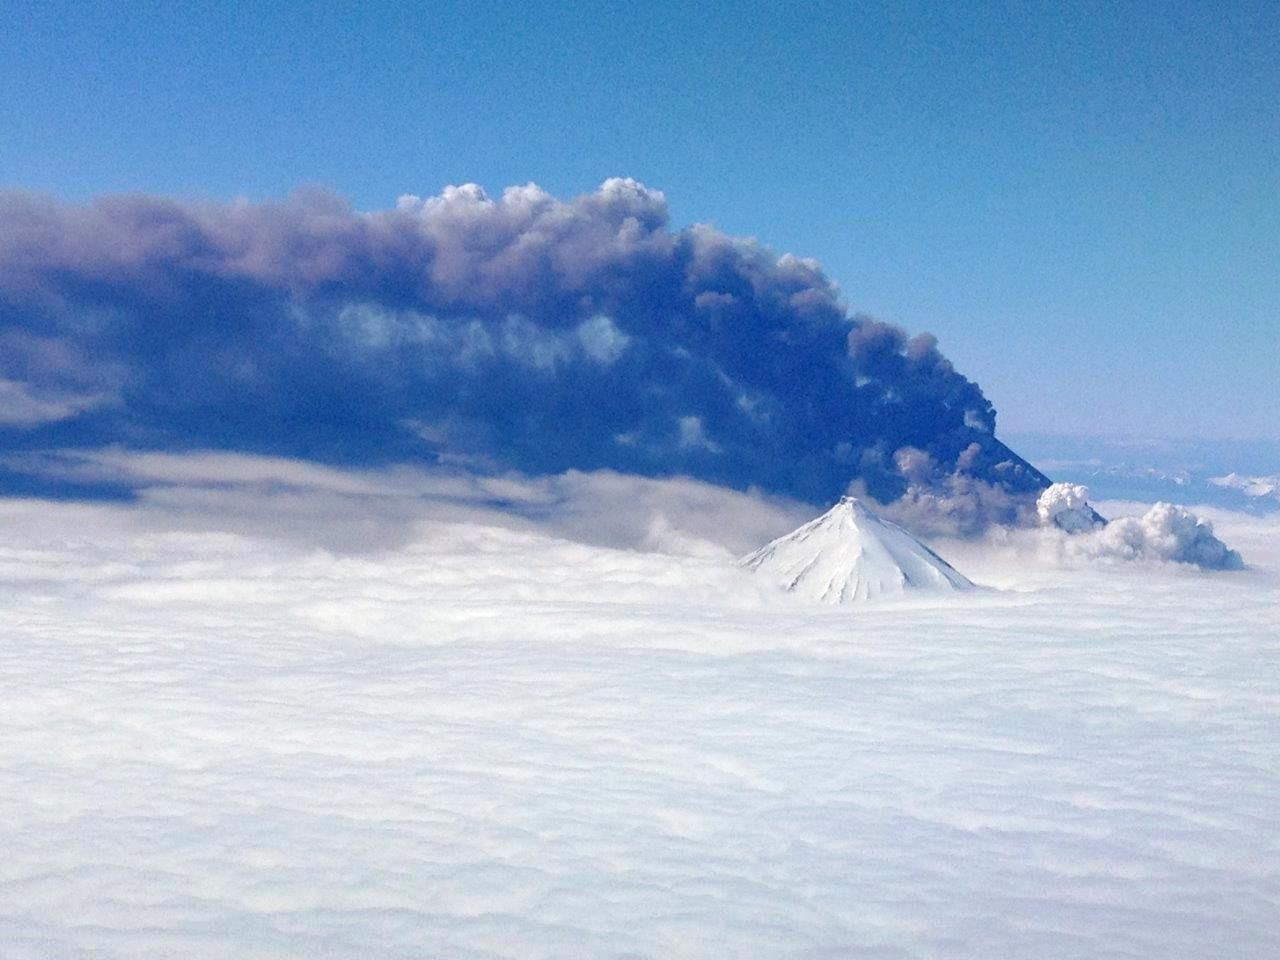 An image of a snow-covered volcano erupting into the white clouds - one natural hazard the U.S. Geological Survey is using to get out the word during National Preparedness Month.